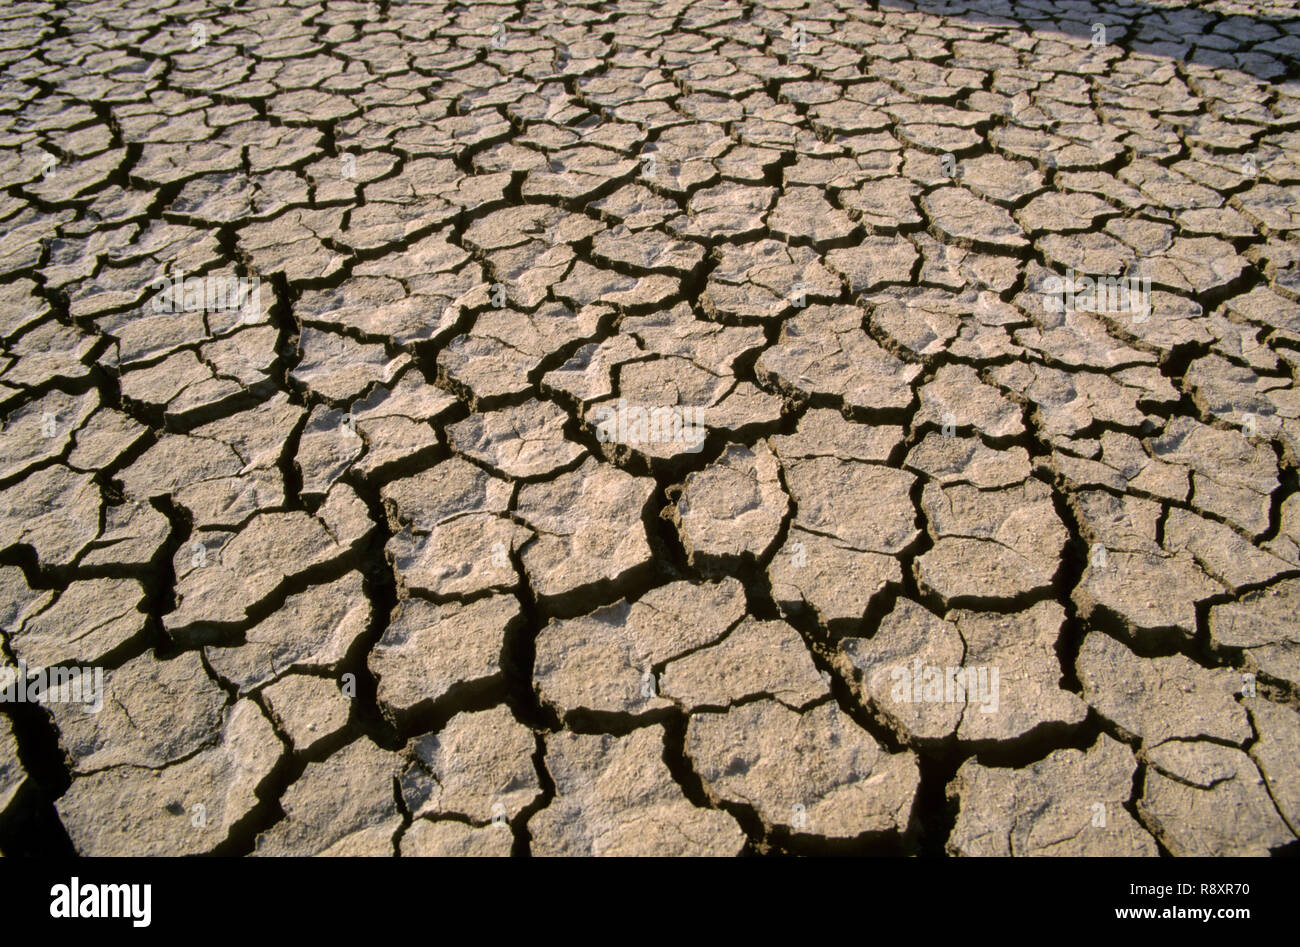 Cracked Earth - Stock Image